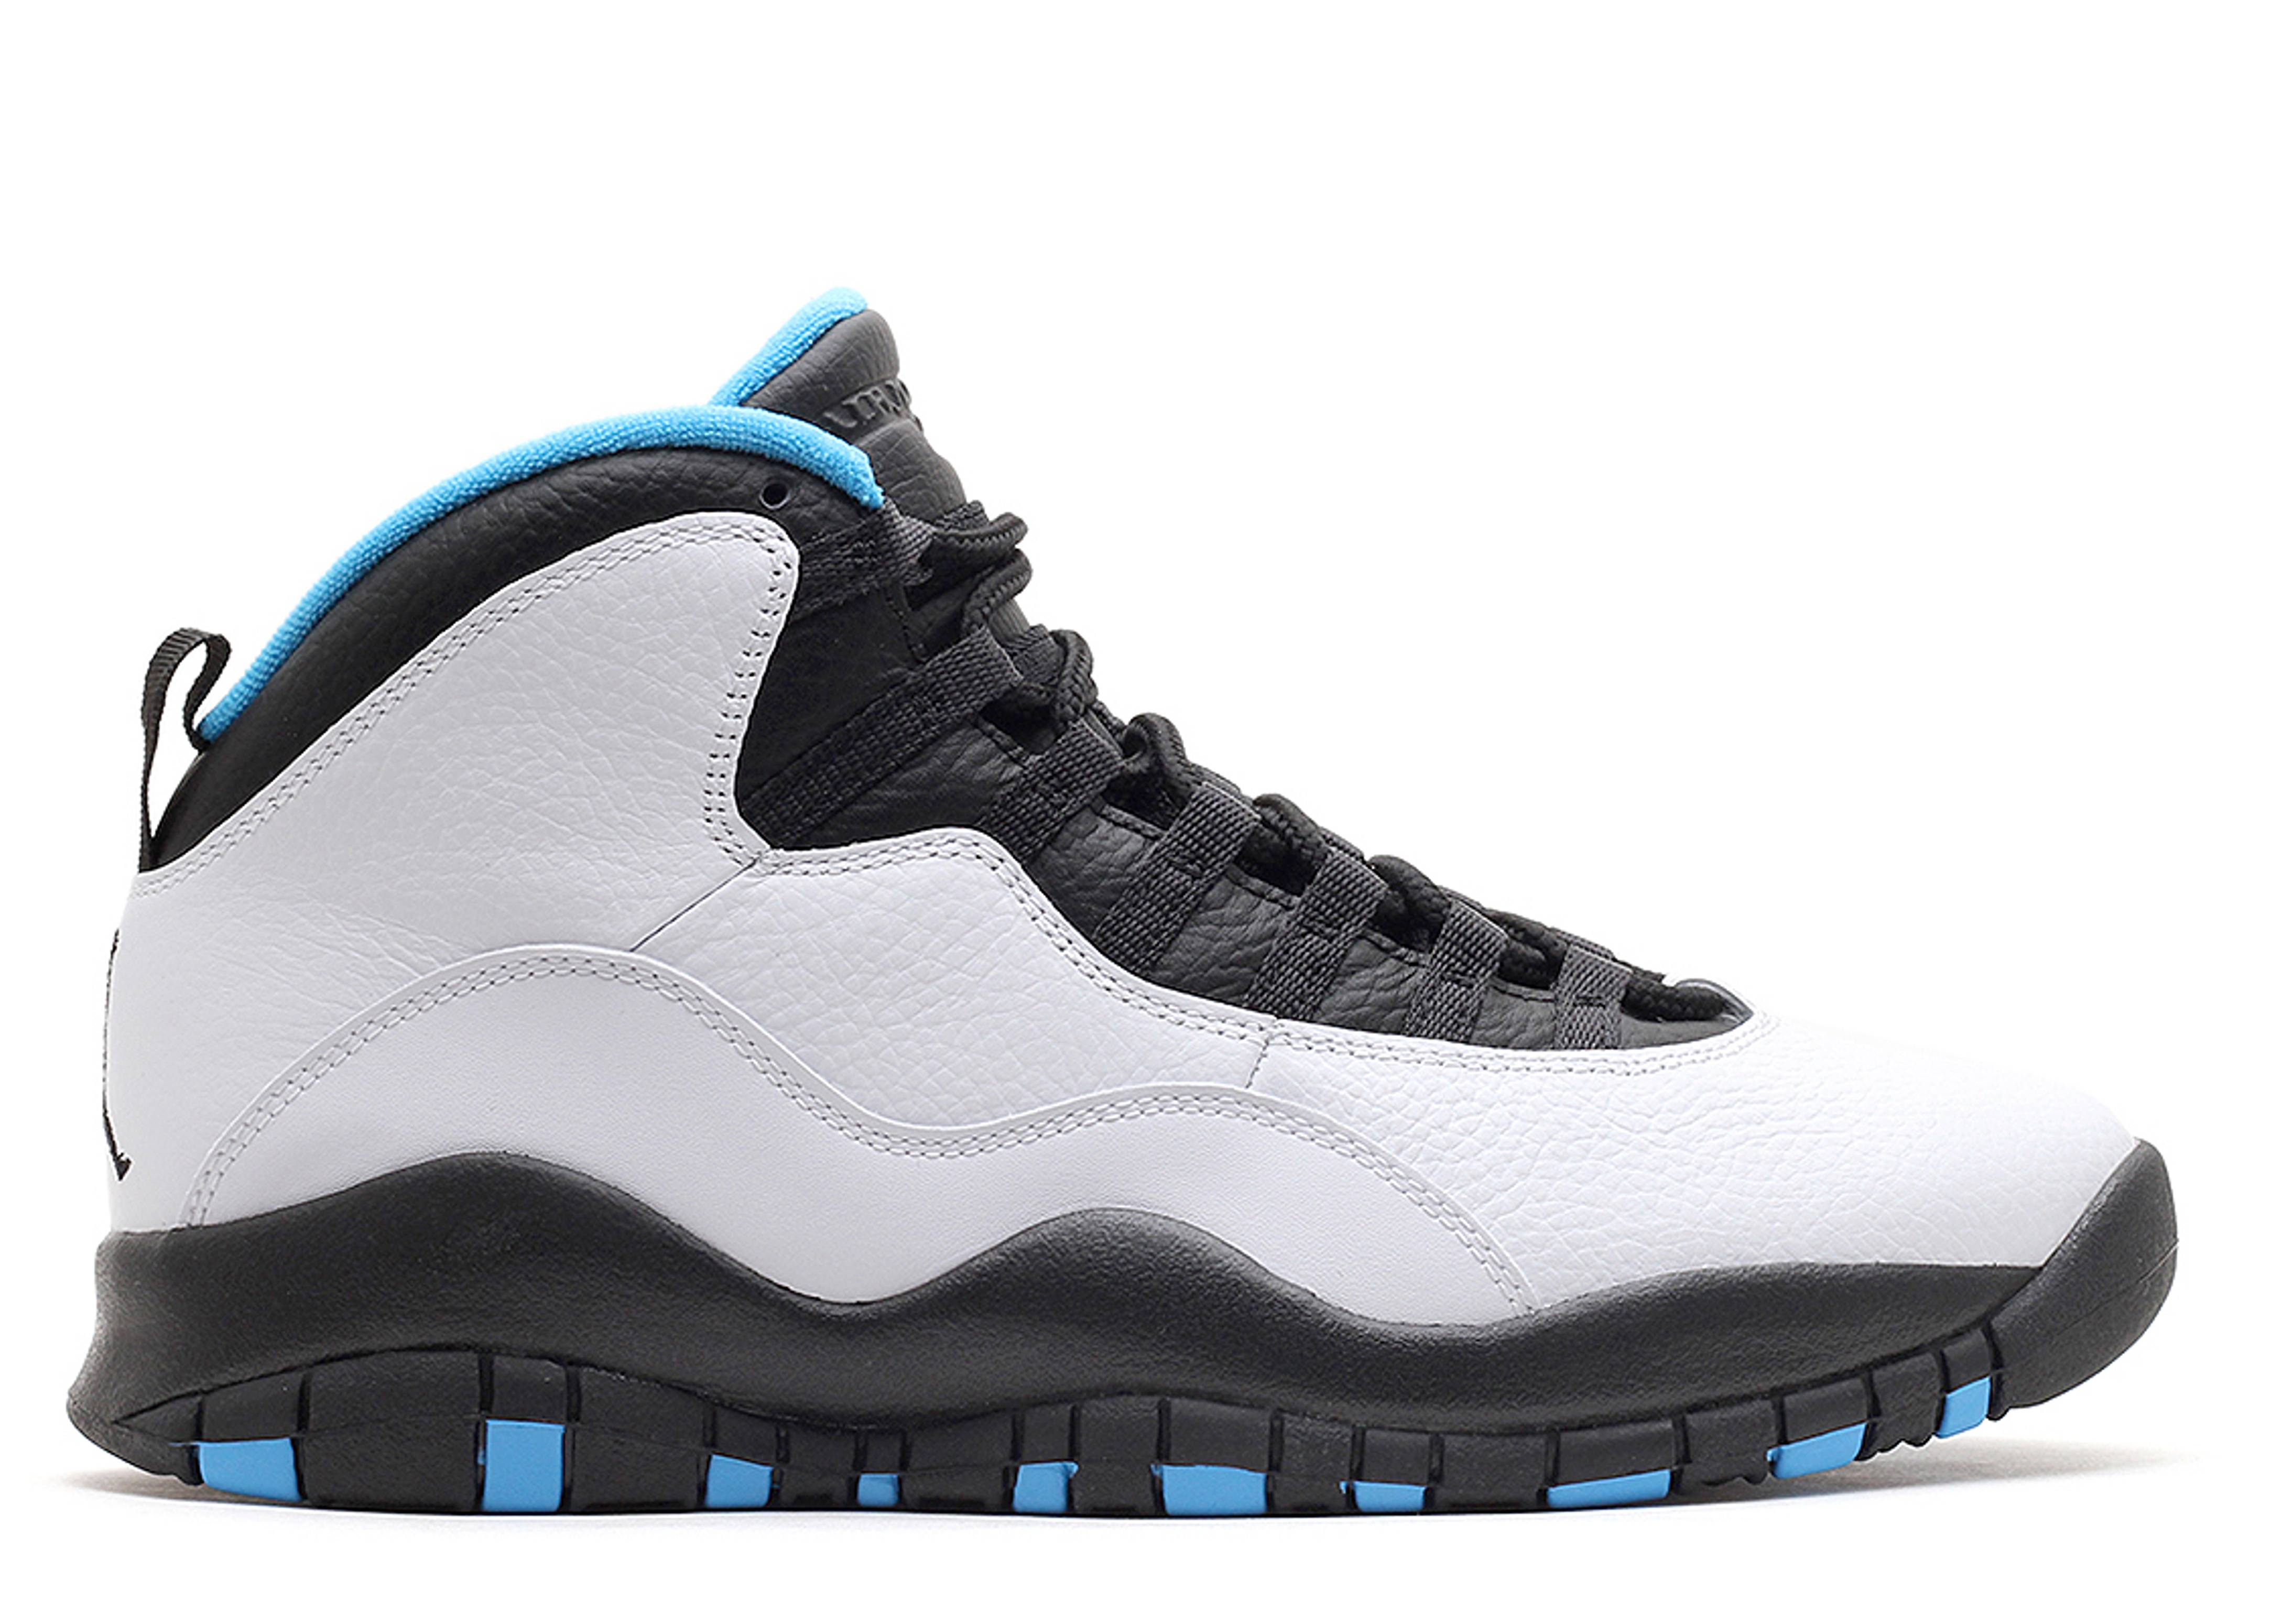 nike air jordan 10 retro white/black